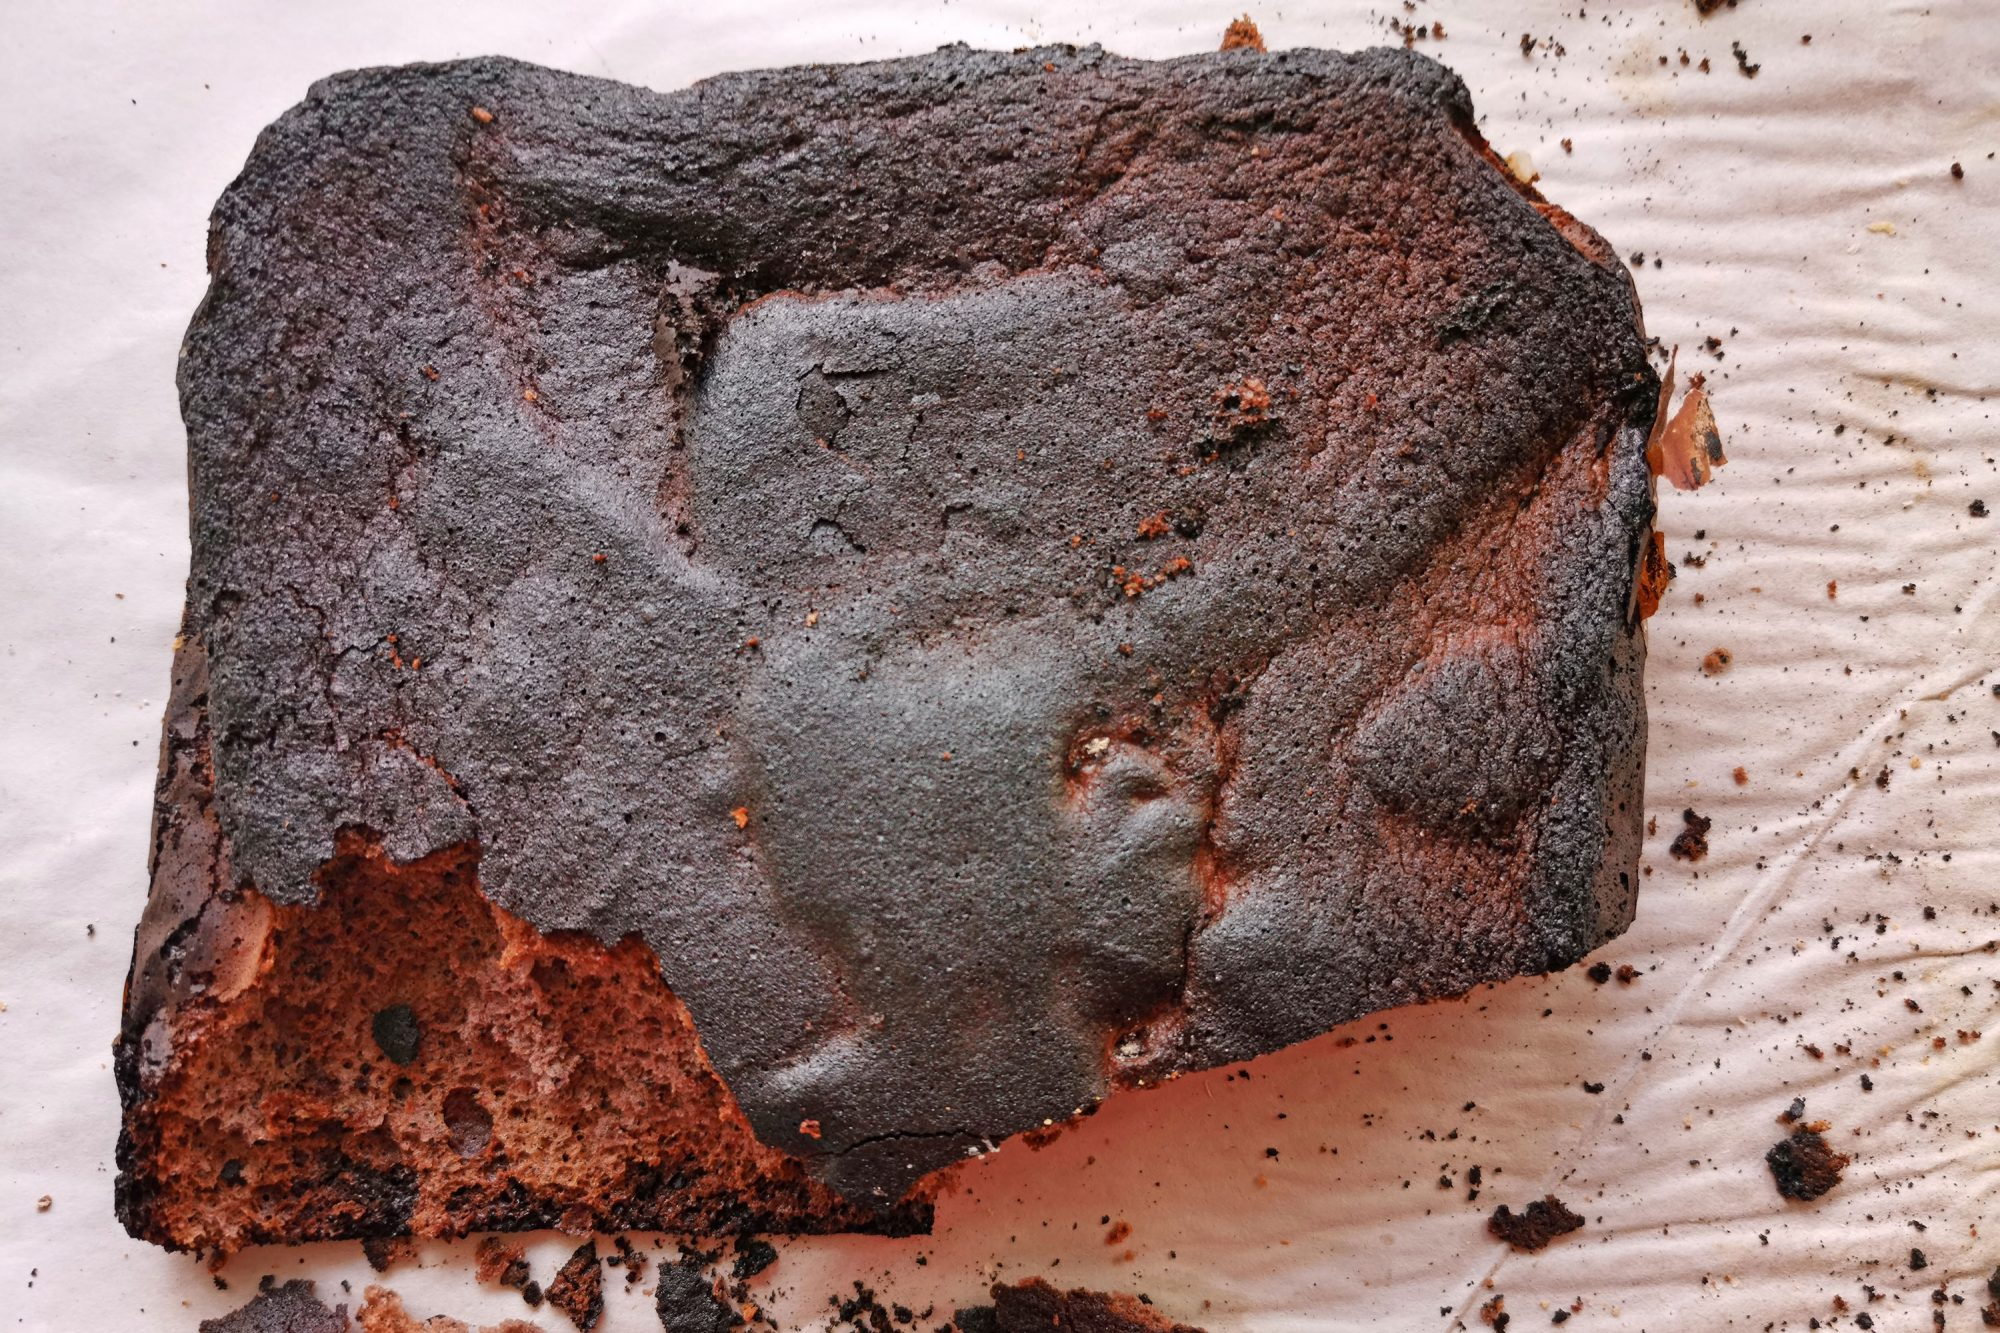 Burnt chocolate cake on parchment paper